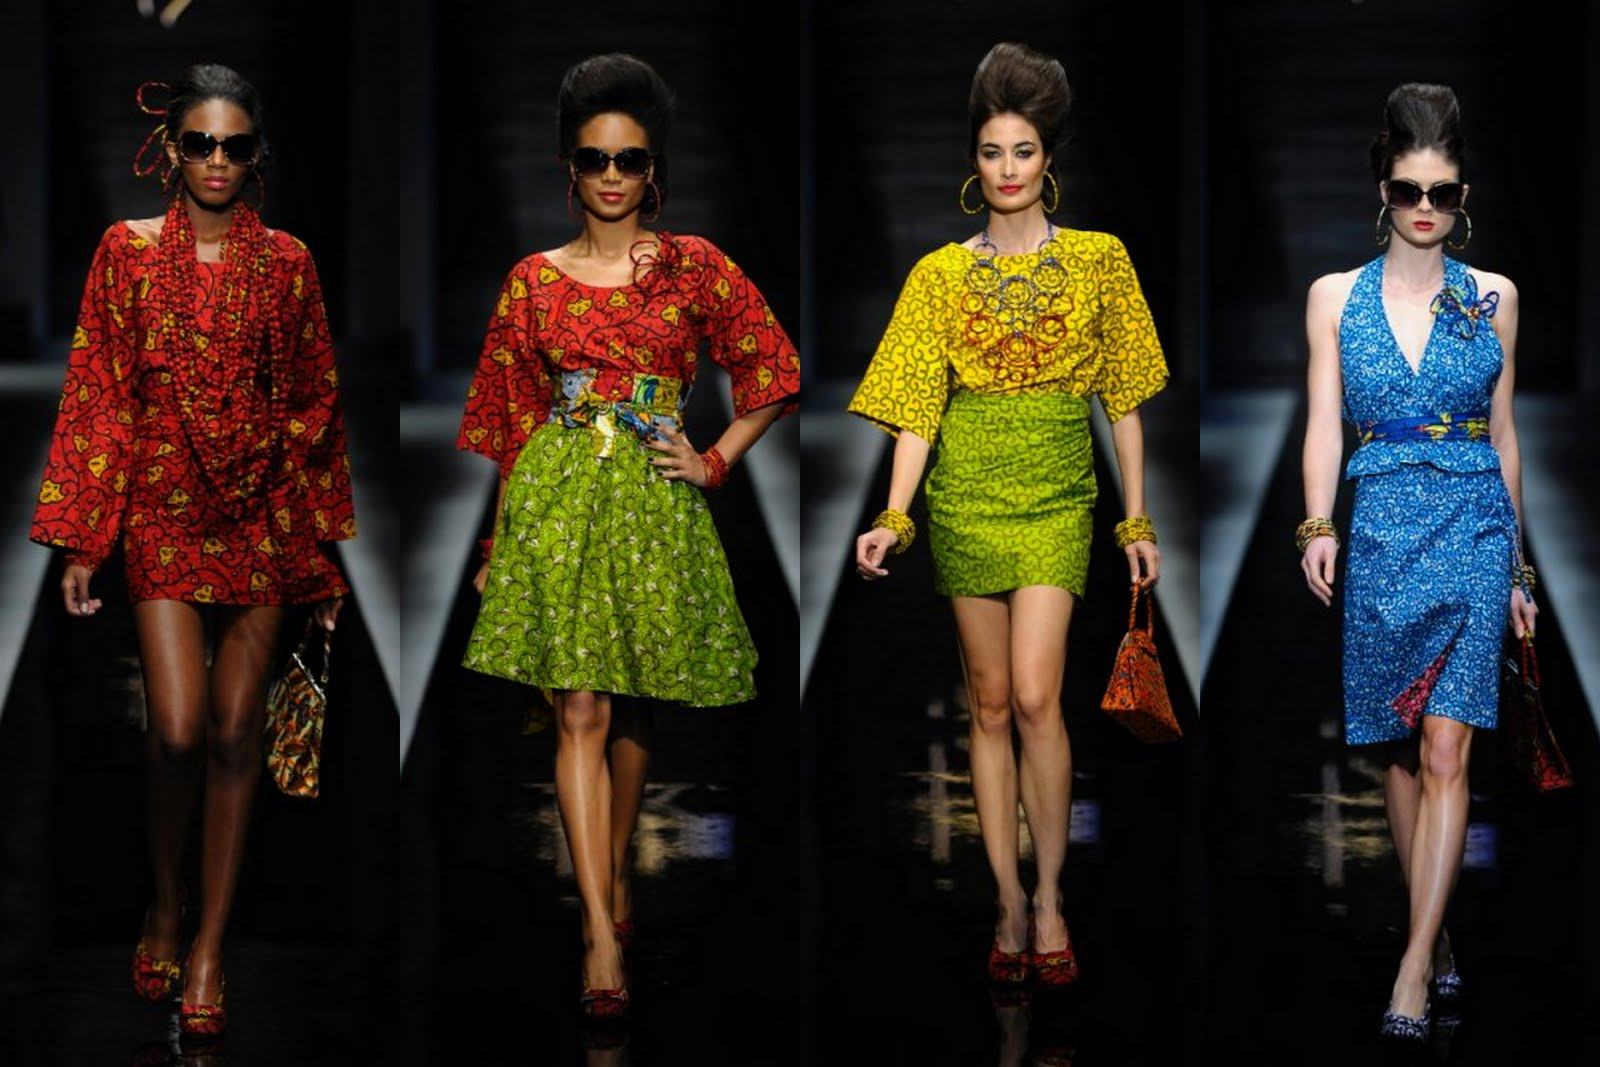 Shop Liquorice Style Notes Ituen Basi Nigeria Day 1 Africa Fashion Week 2010